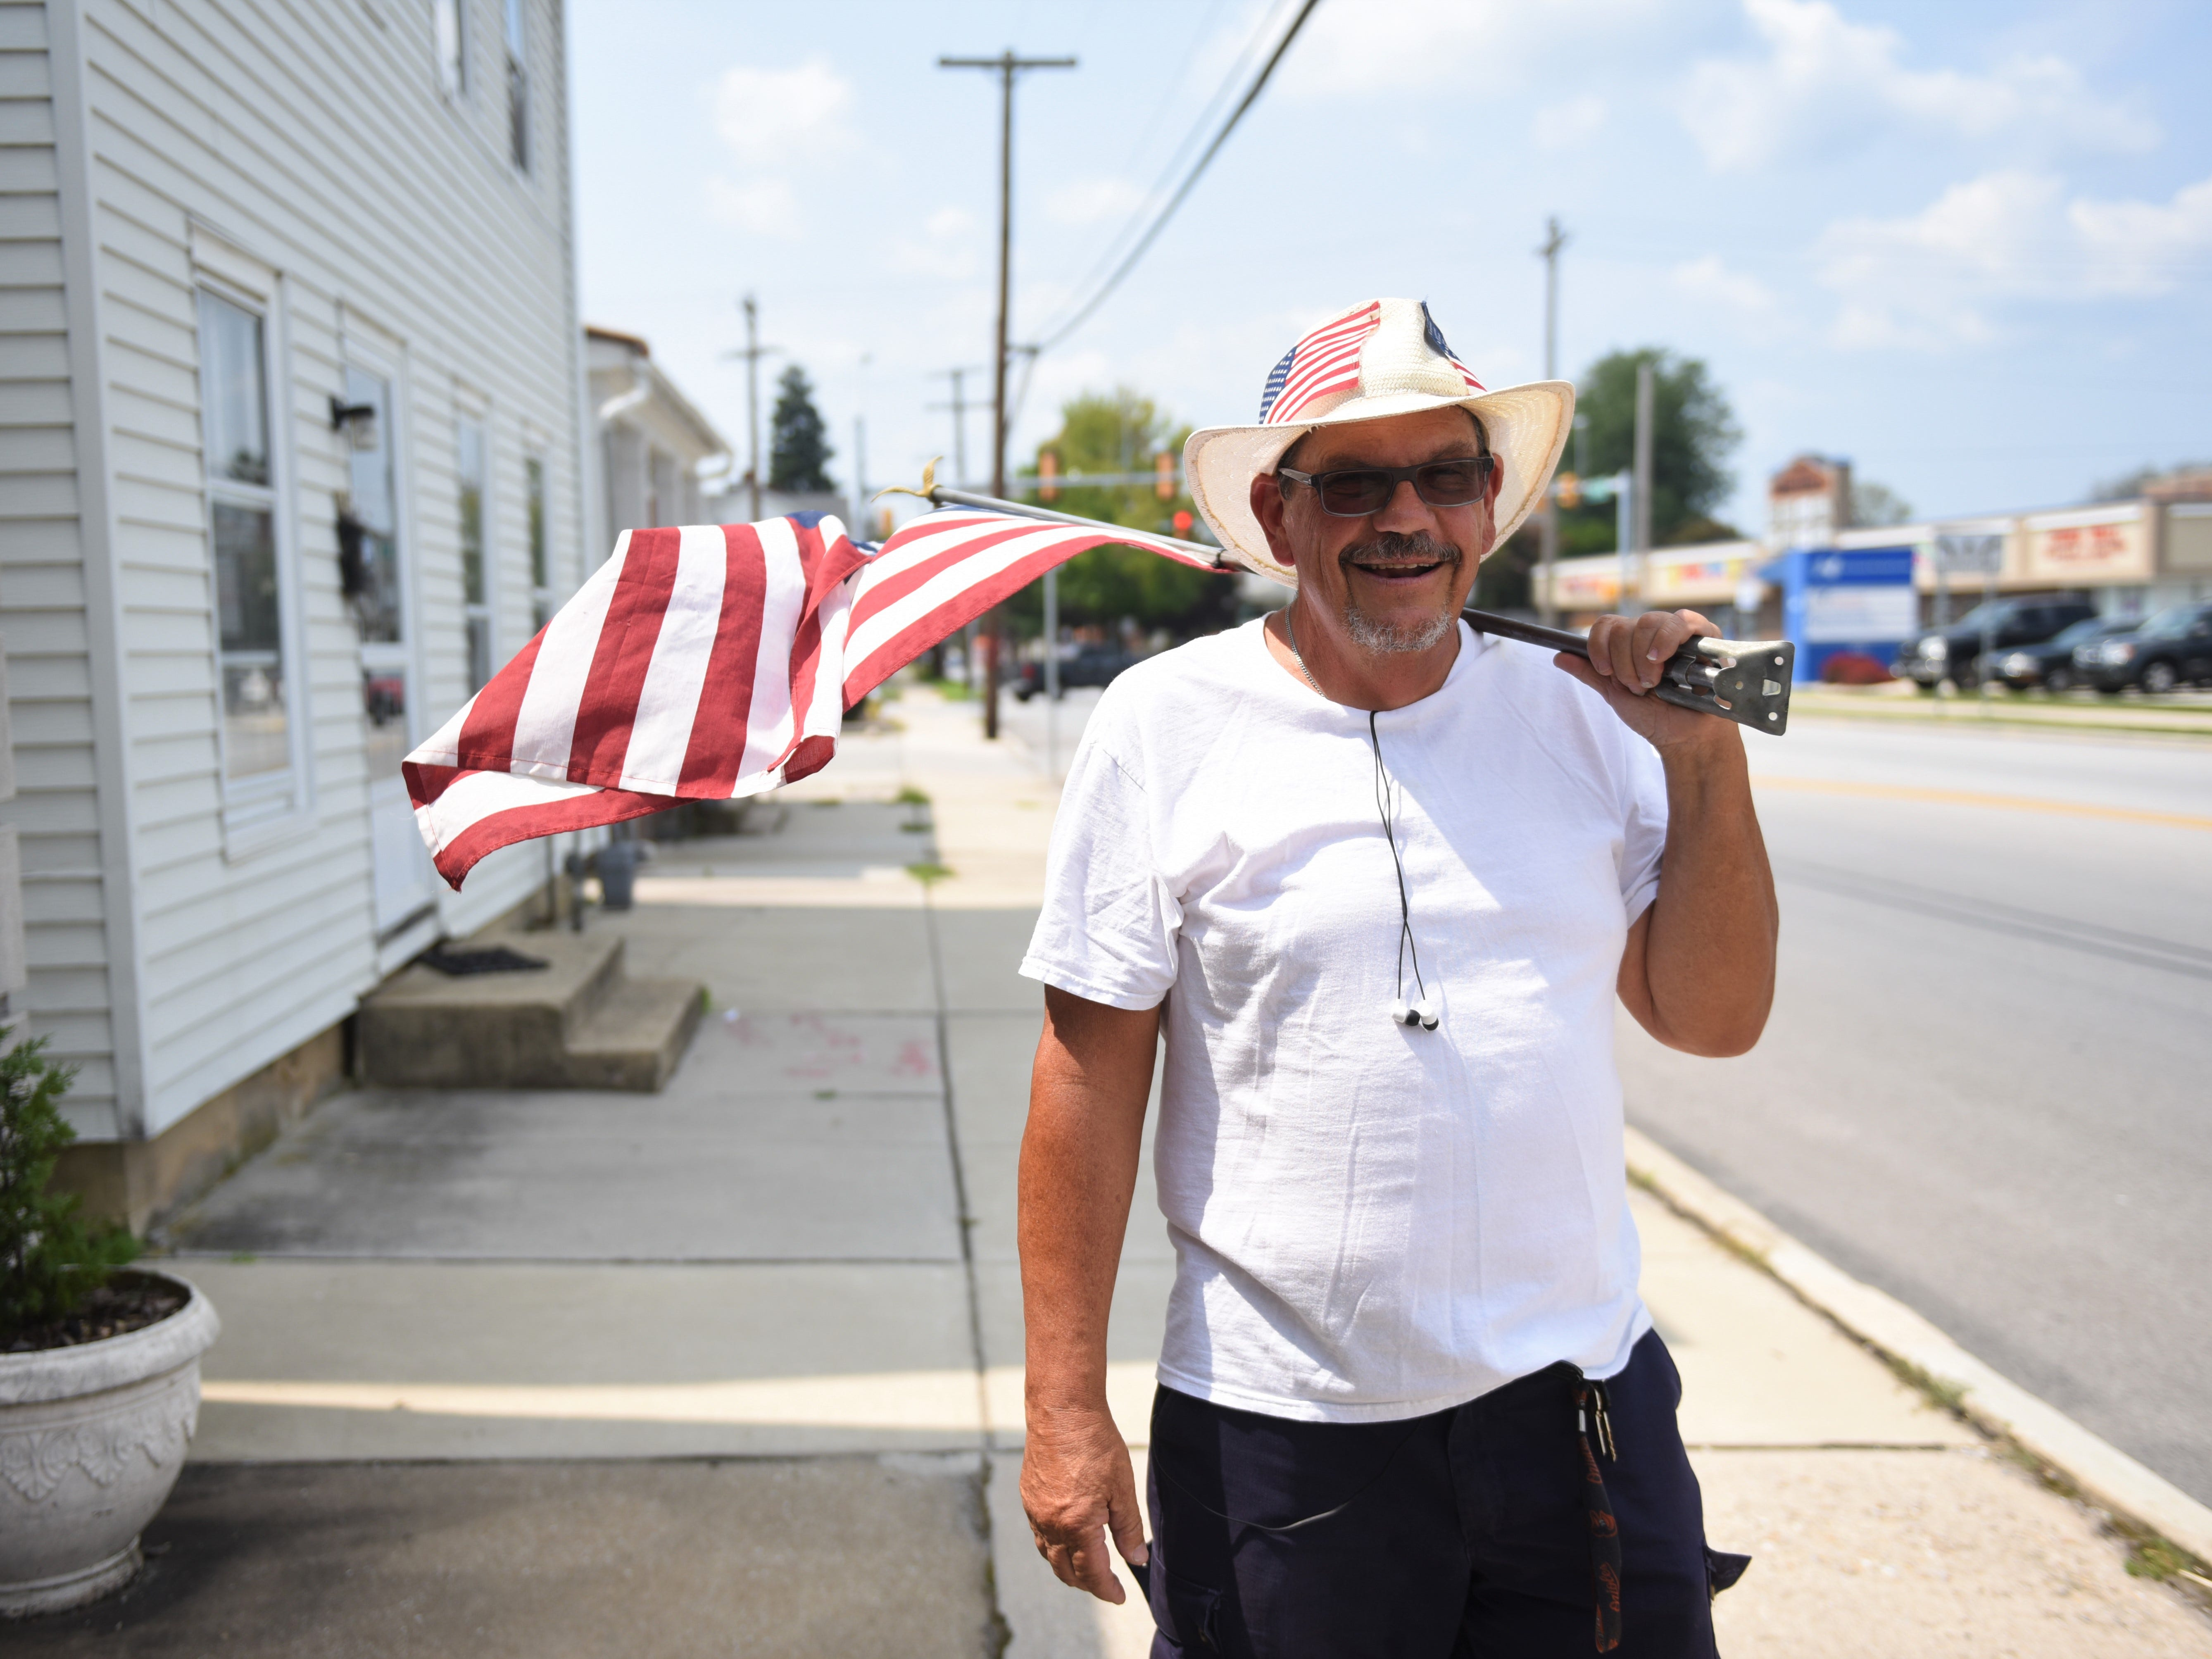 Meet the man walking around Hanover with the American flag on his shoulder